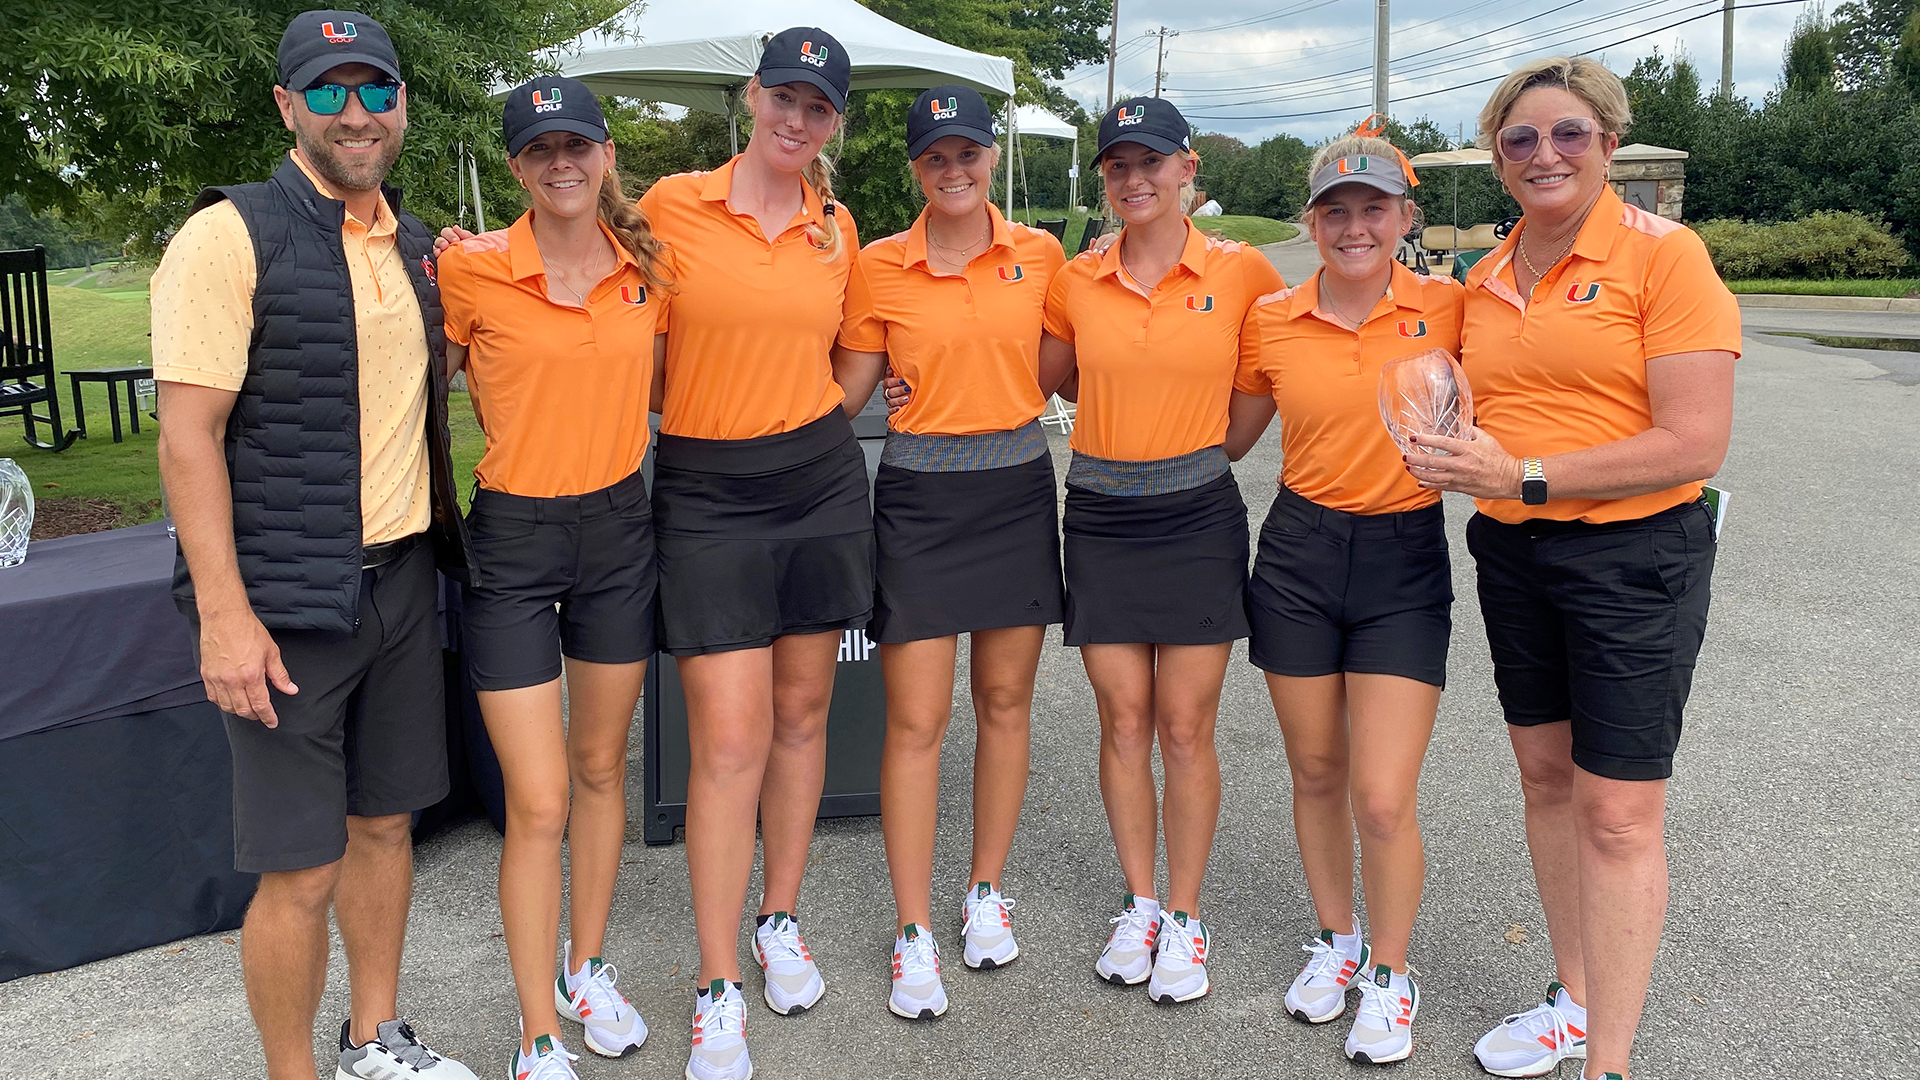 Miami Finishes Runner-Up at Mercedes-Benz Collegiate Championships